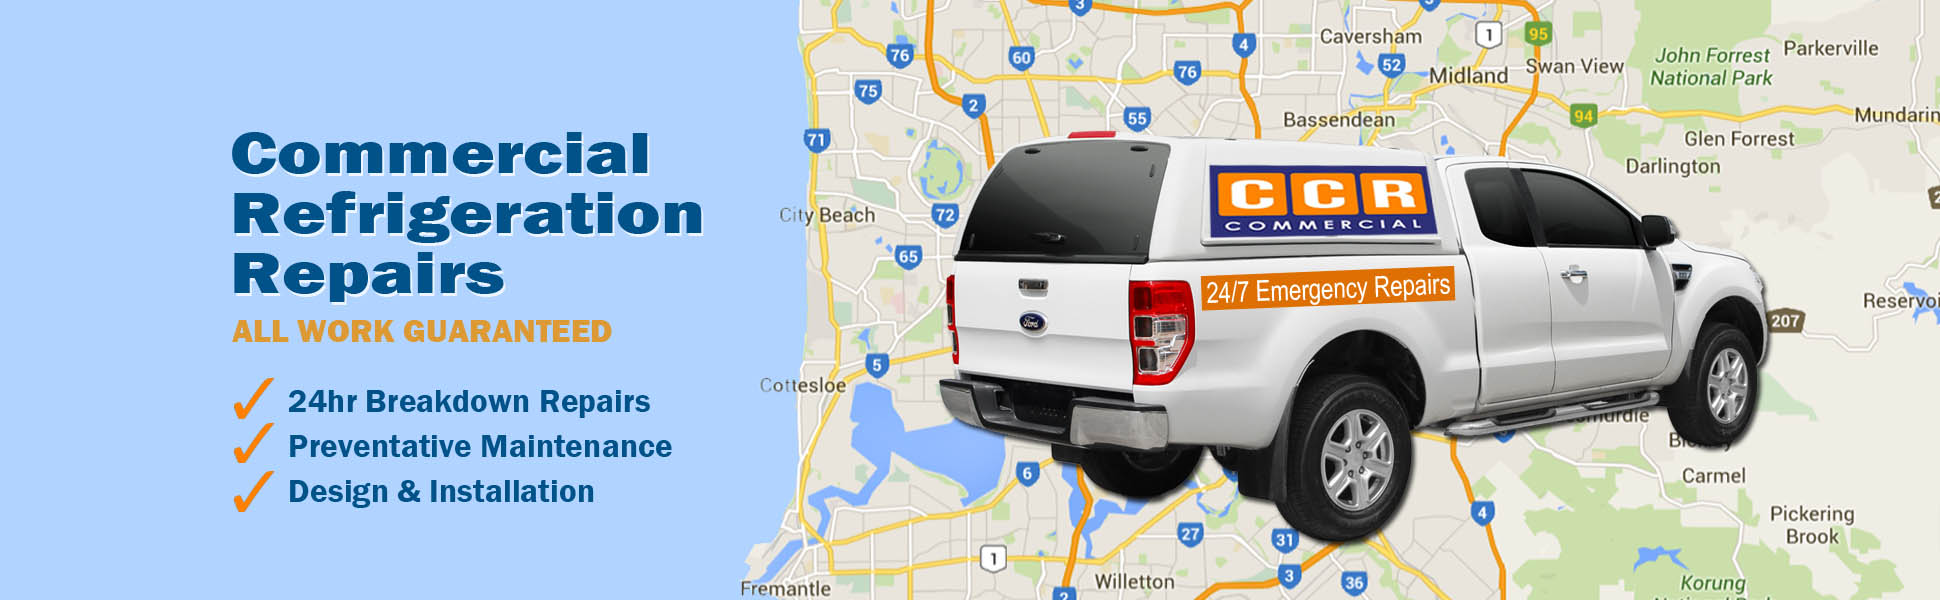 CCR Commercial Refrigeration Perth Repairs Sales Service